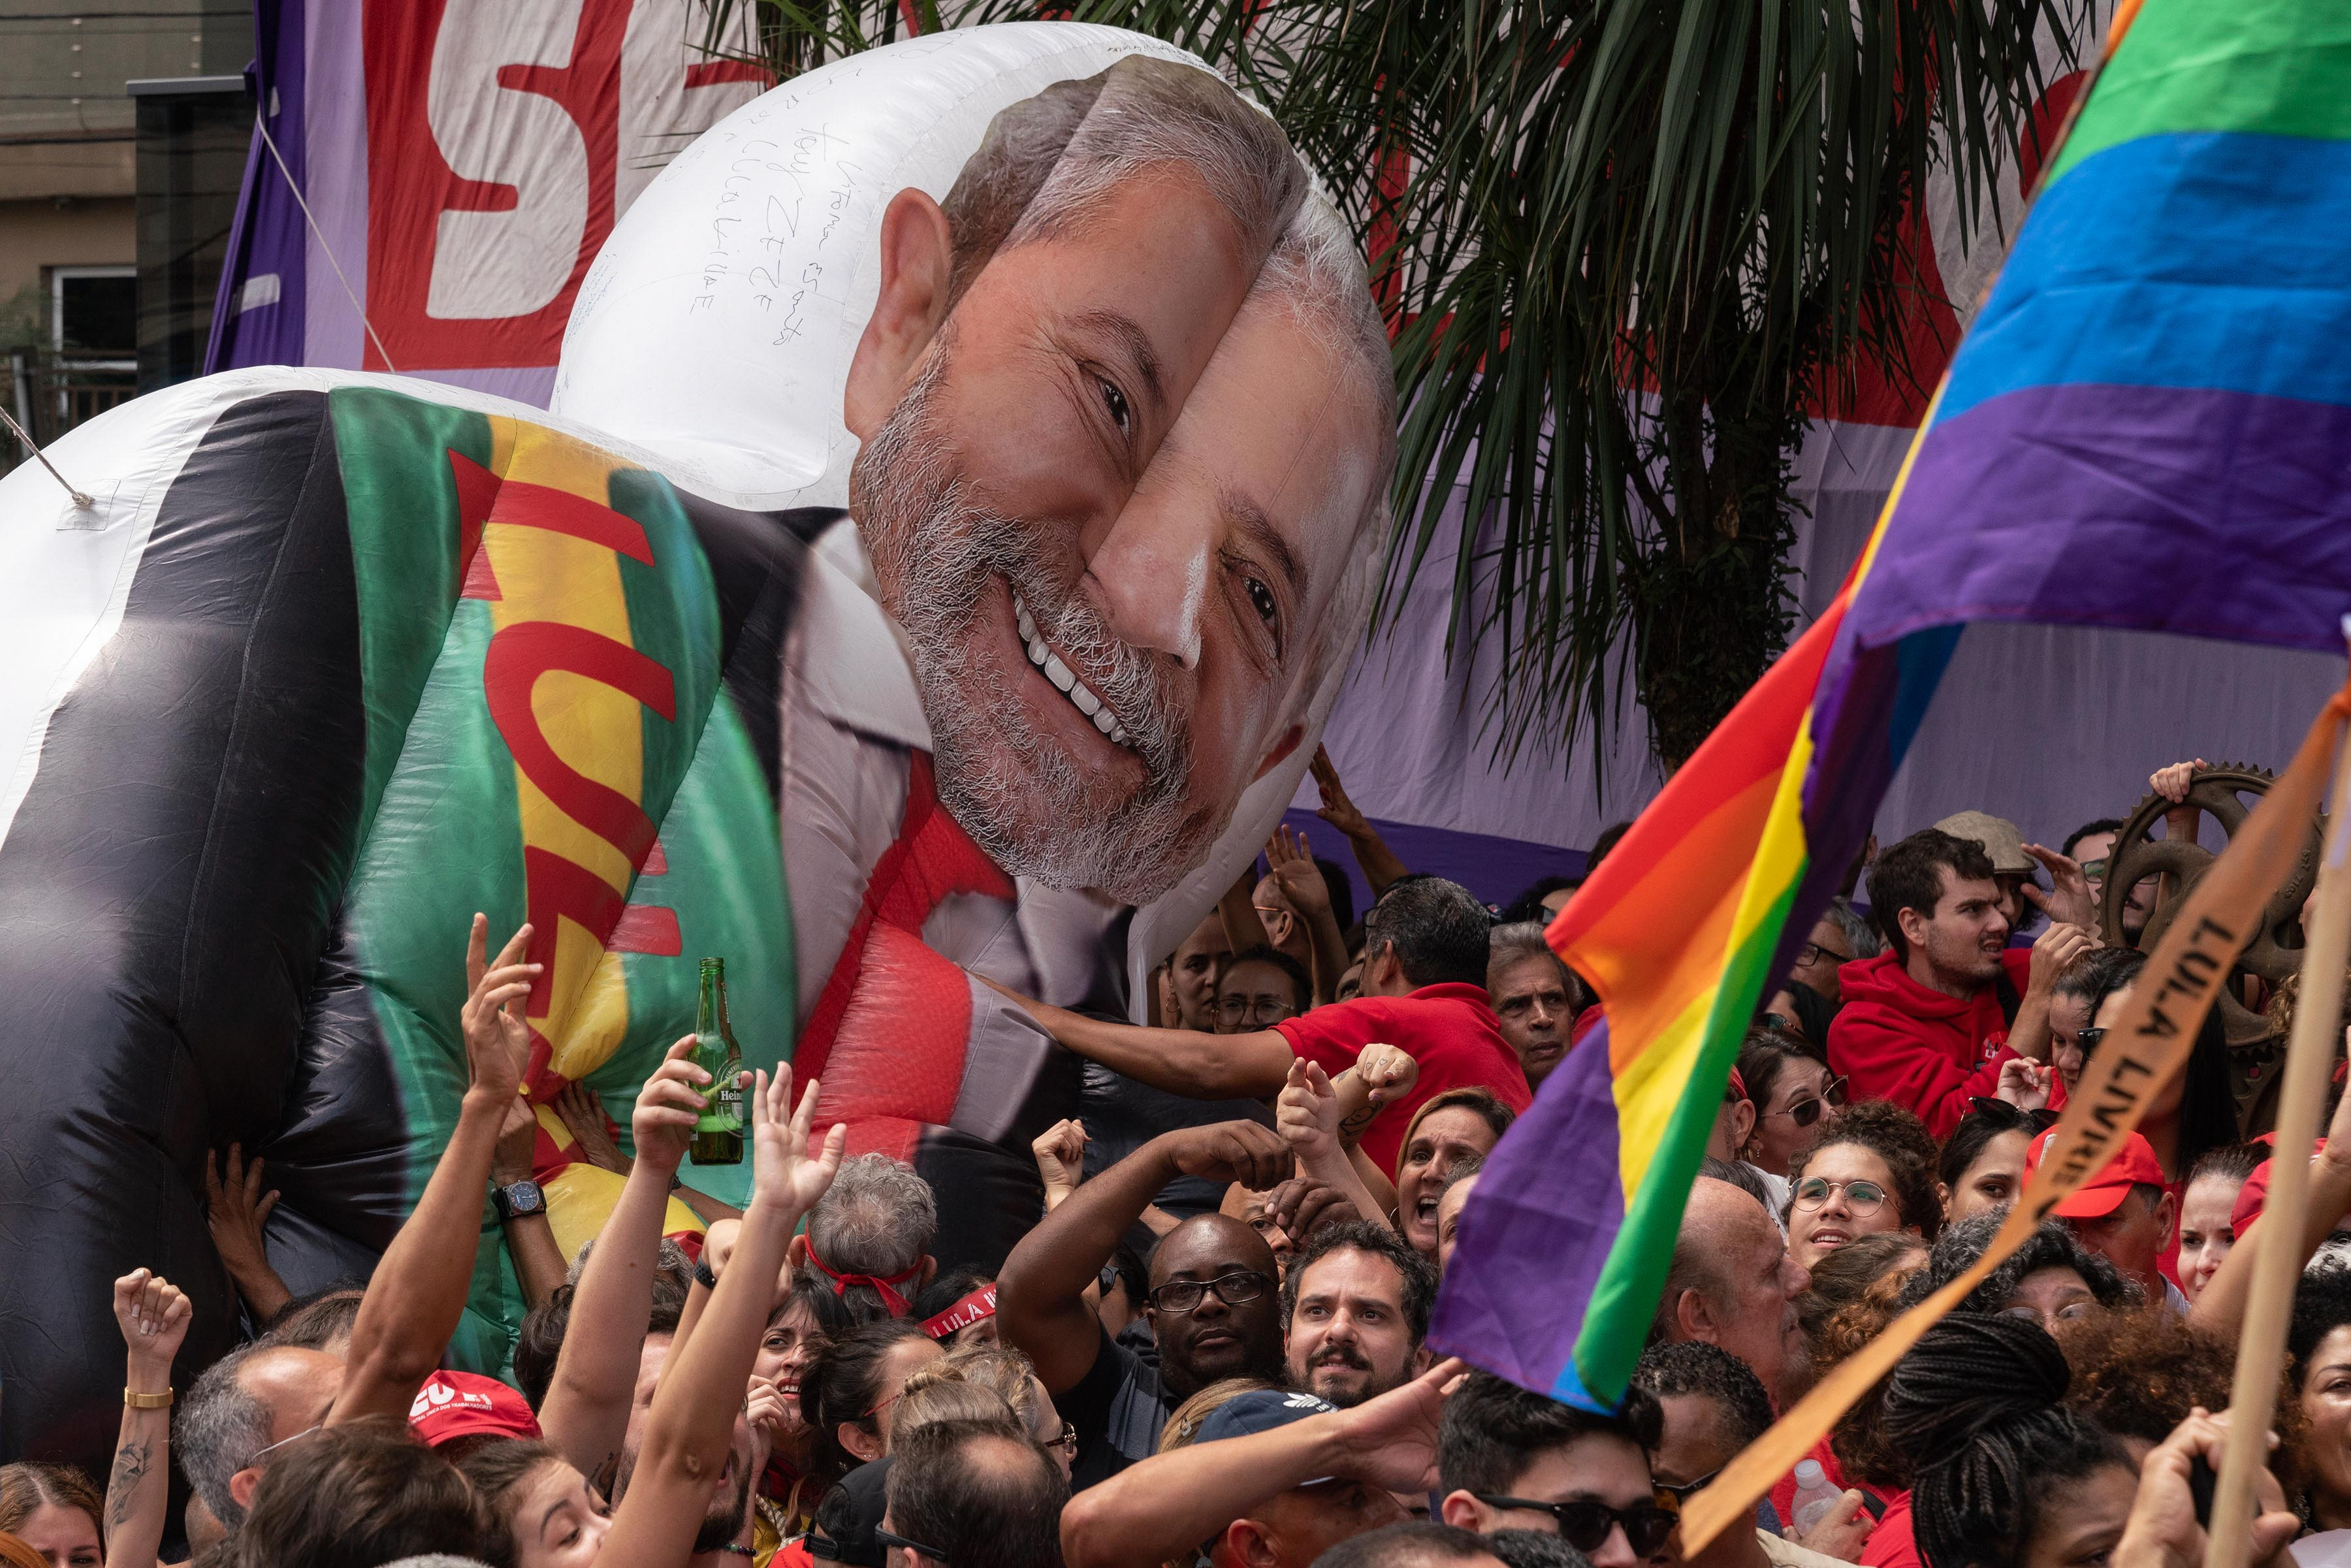 9 November 2019: Lula's release has been understood as a victory for the Left in Brazil.